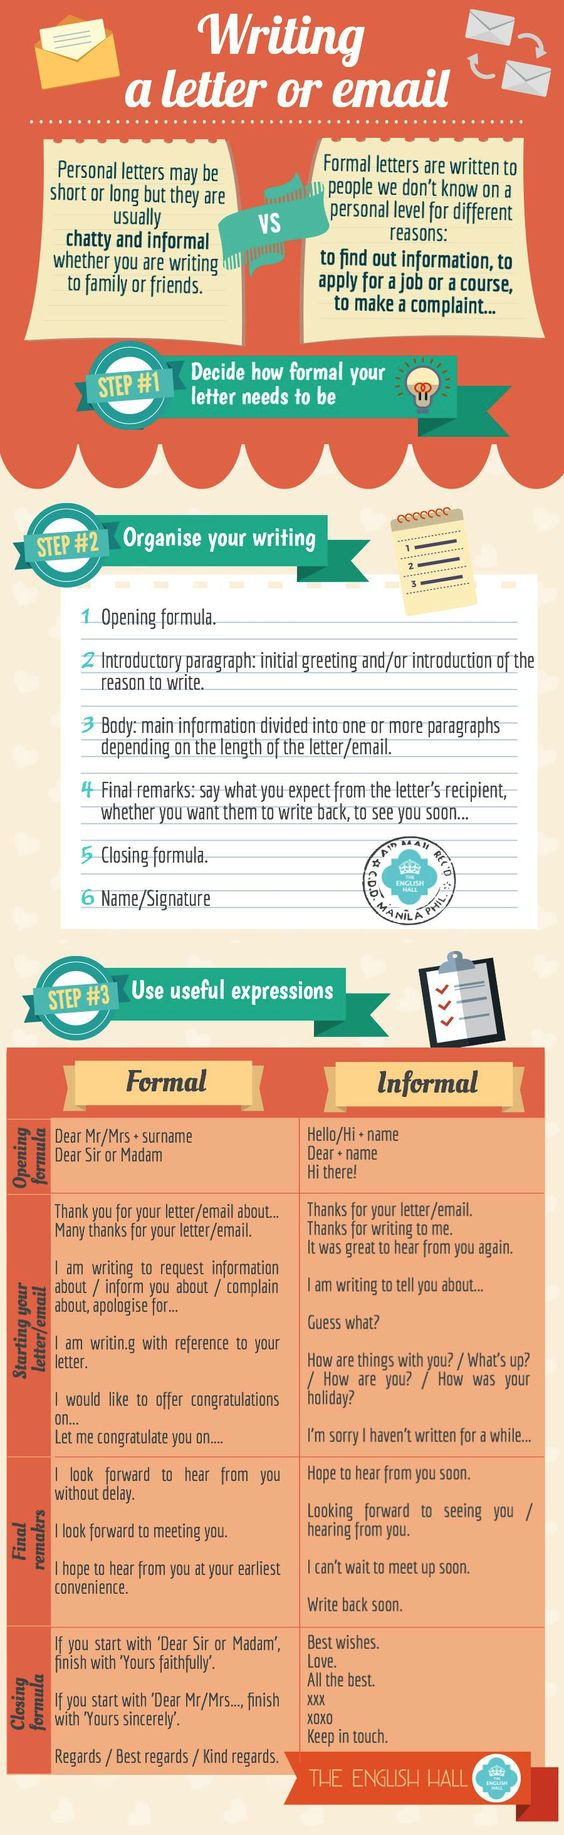 formal vs informal essays Even though you might've written several more informal essays in a lifetime, you' re probably more accustomed with the concept of a formal essay formal.